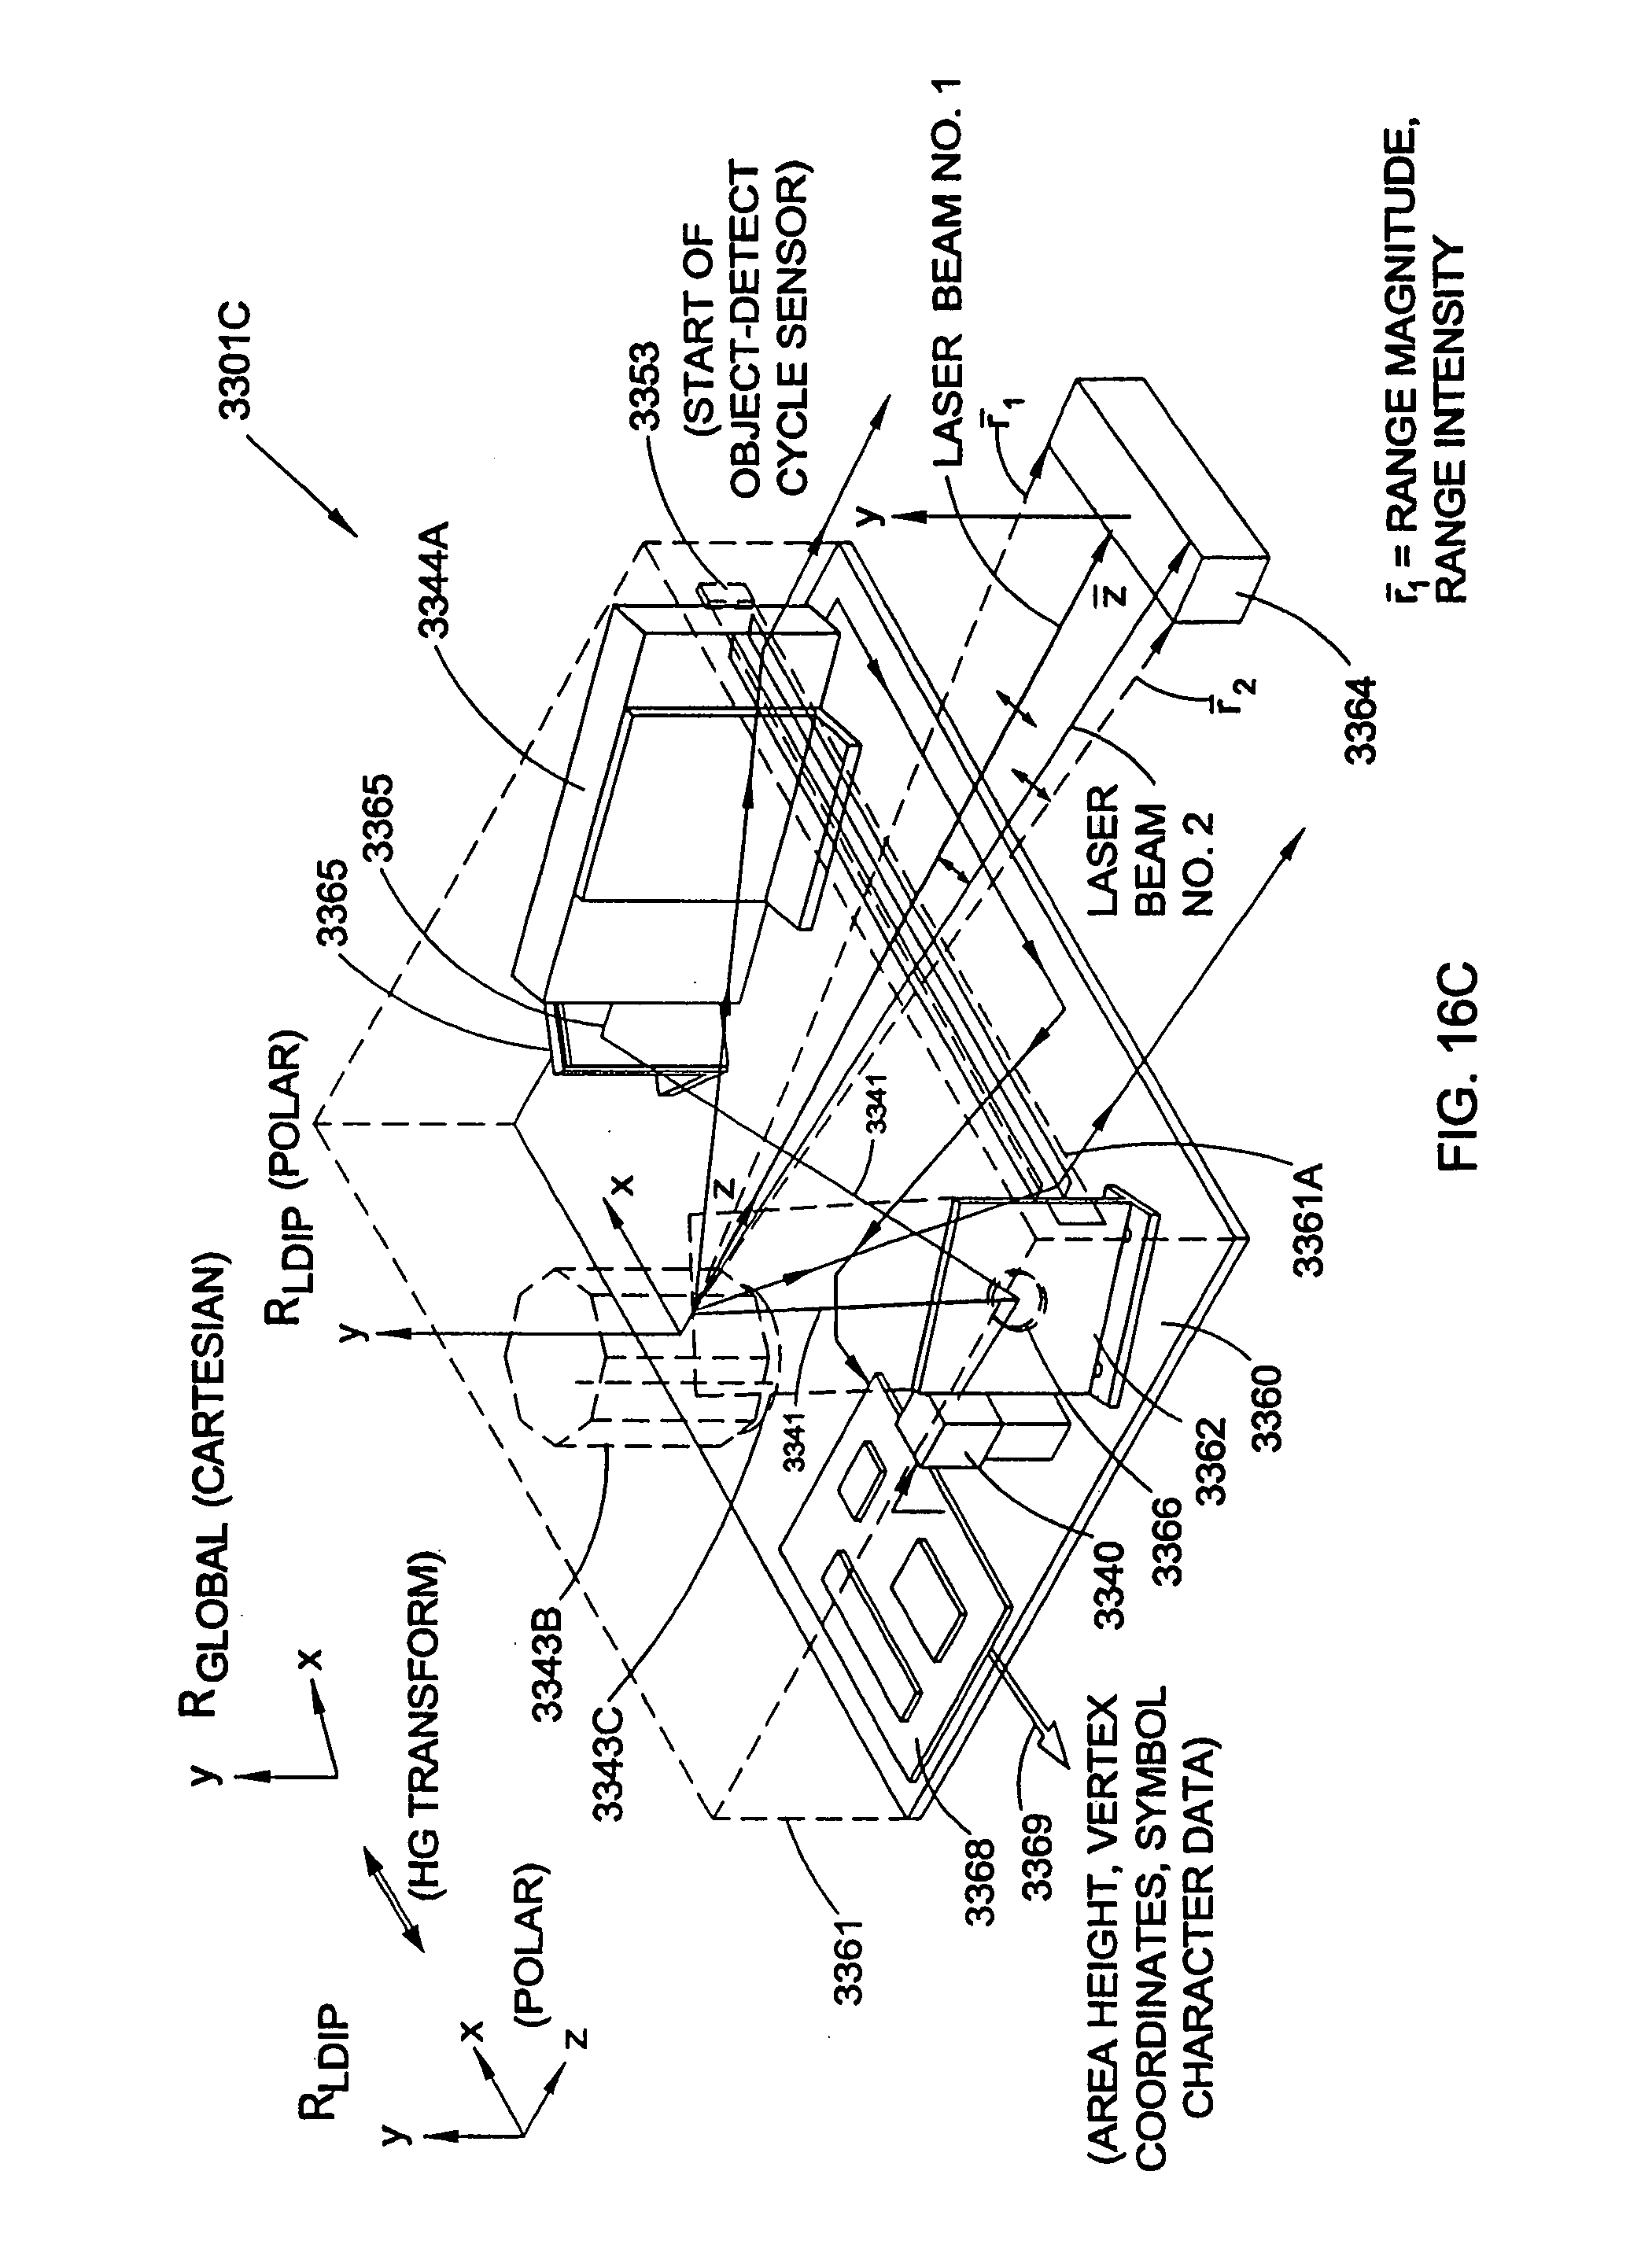 Patent Us 7527205 B2 Design A D Converter With The Following Required Characteristics Images